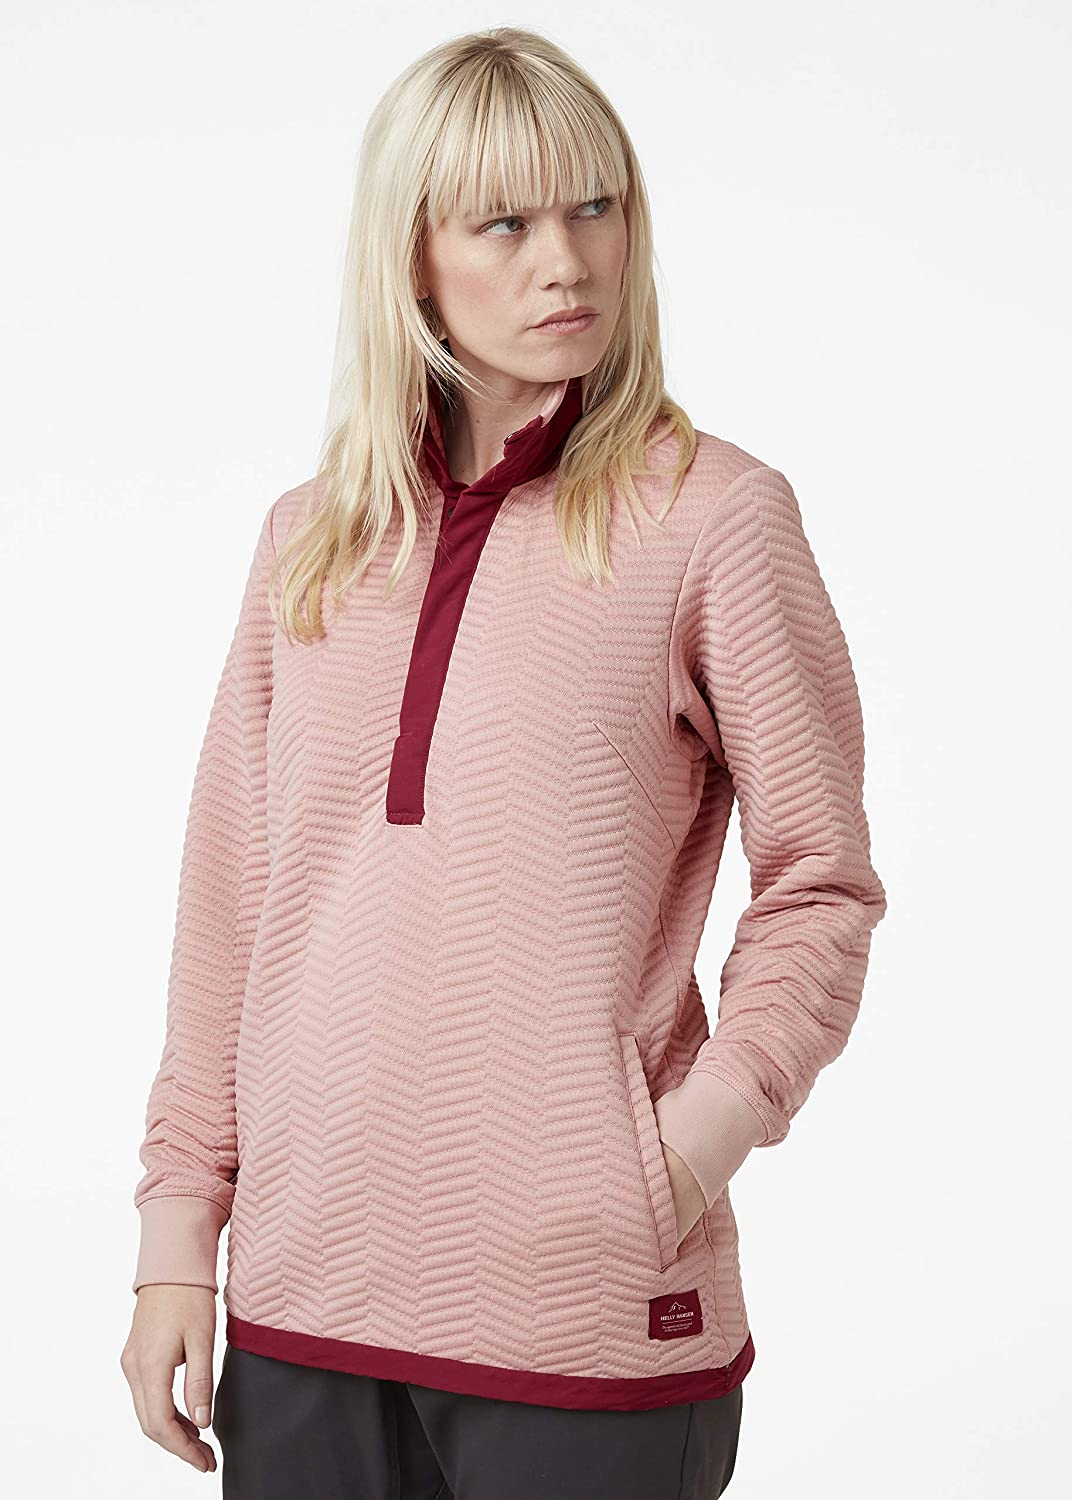 Helly Hansen Damen Lillo Sweatshirt Damen Sweatshirt Misty Rose